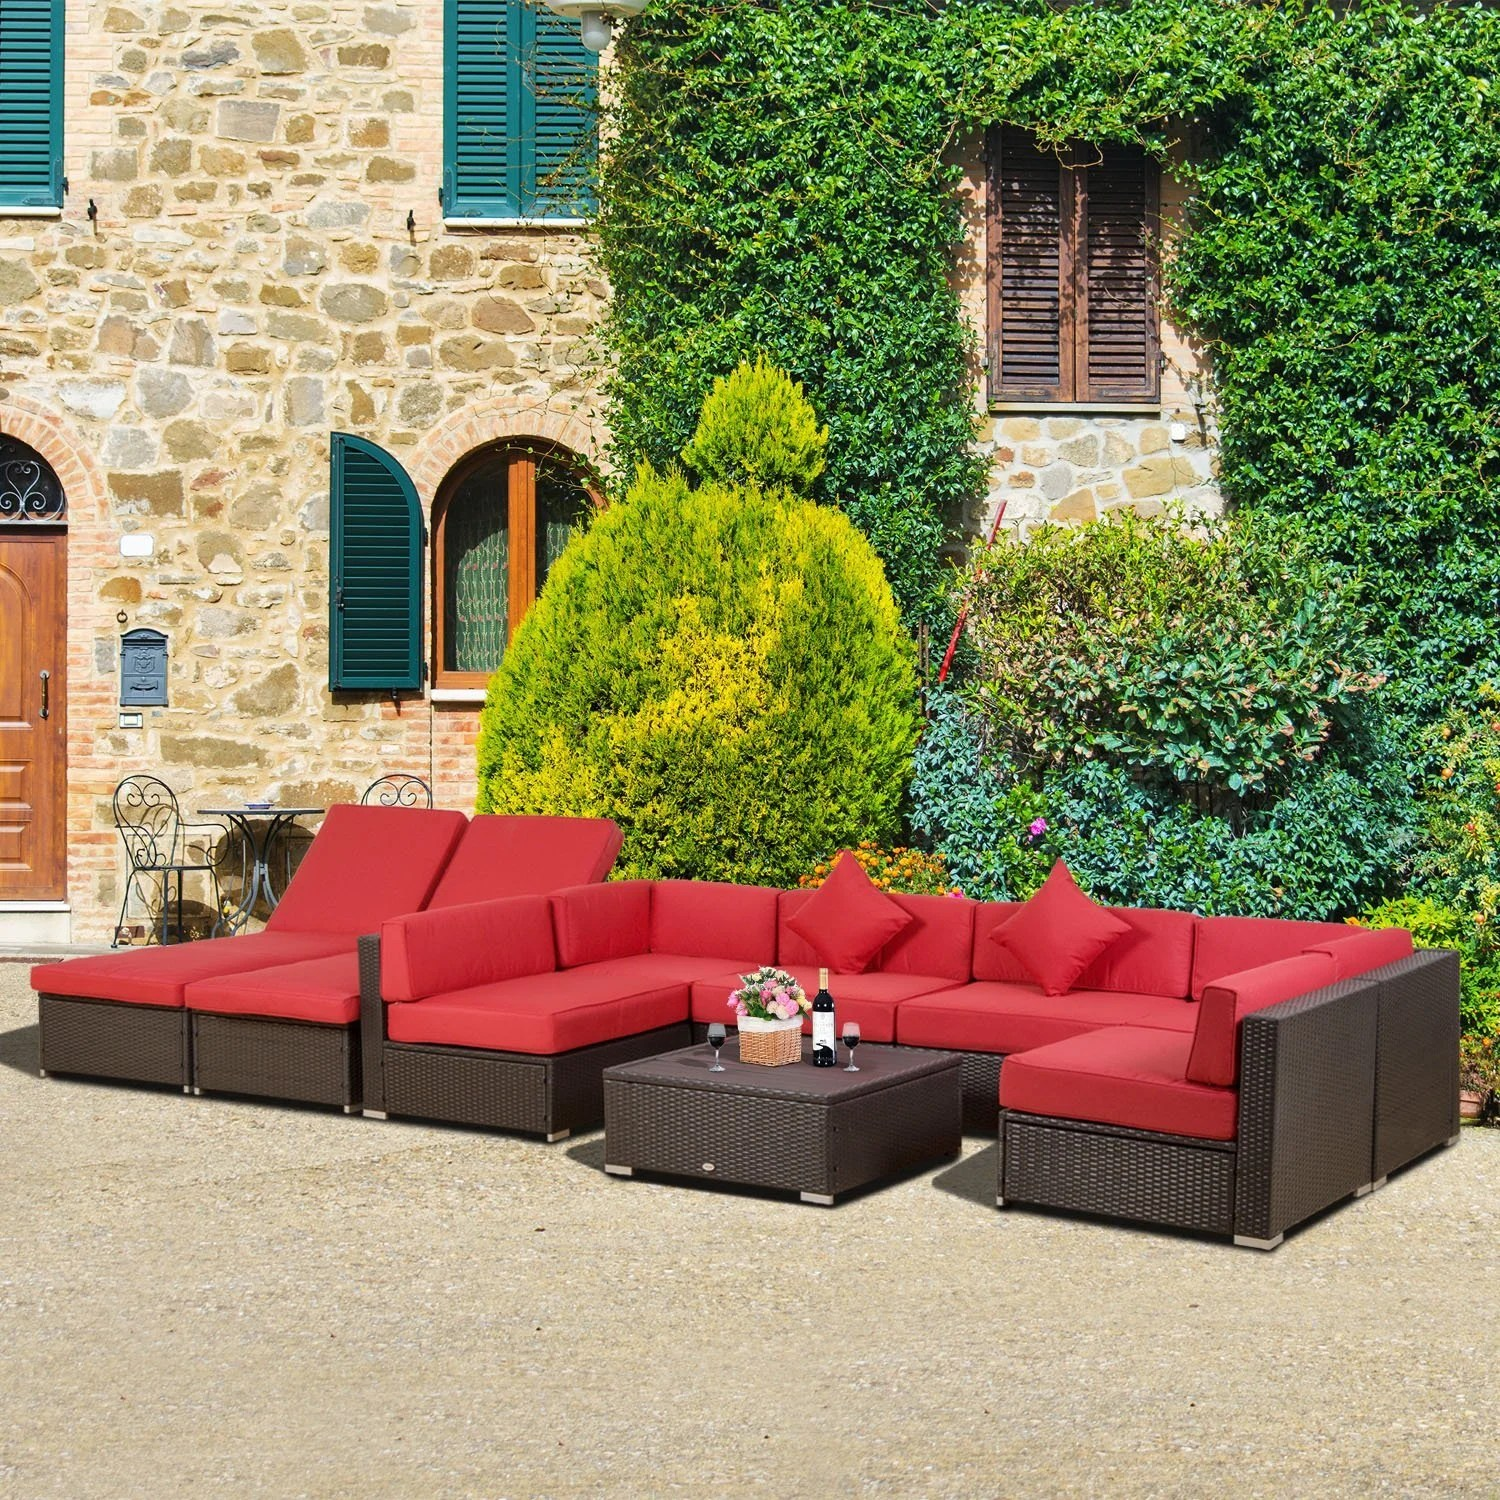 Urban Sofa Barneveld Trudell 9 Piece Rattan Sectional Seating Group Set With Cushions